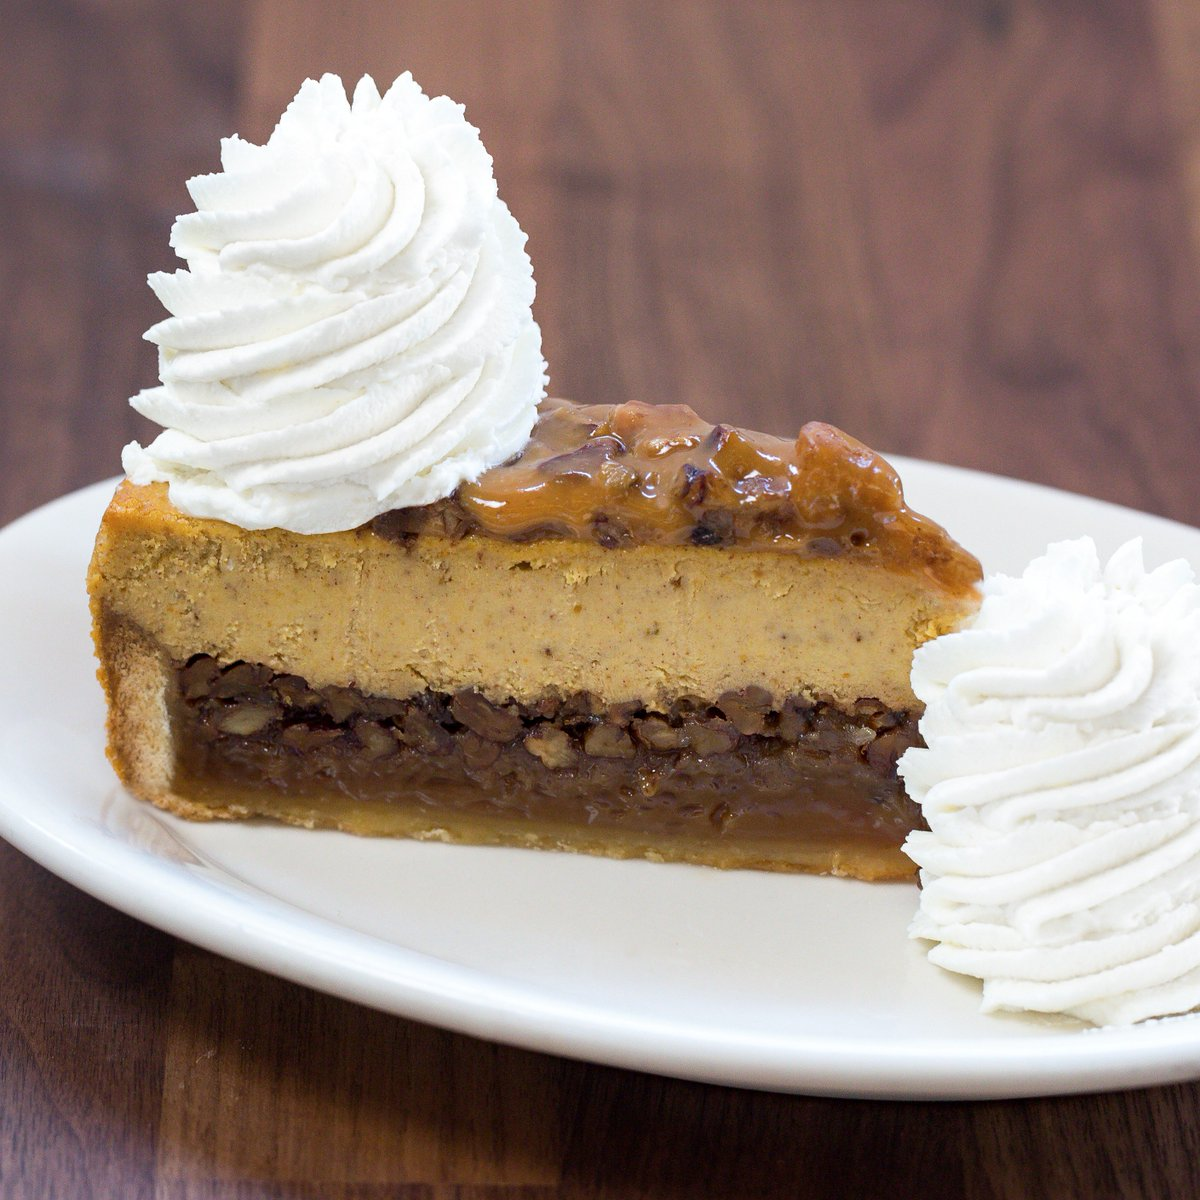 The Cheesecake Factory On Twitter Part Pumpkin Cheesecake Part Pecan Cheesecake All Good 25 Cents Of Each Slice Sold Will Be Donated To Feedingamerica Https T Co 47vxufoogn